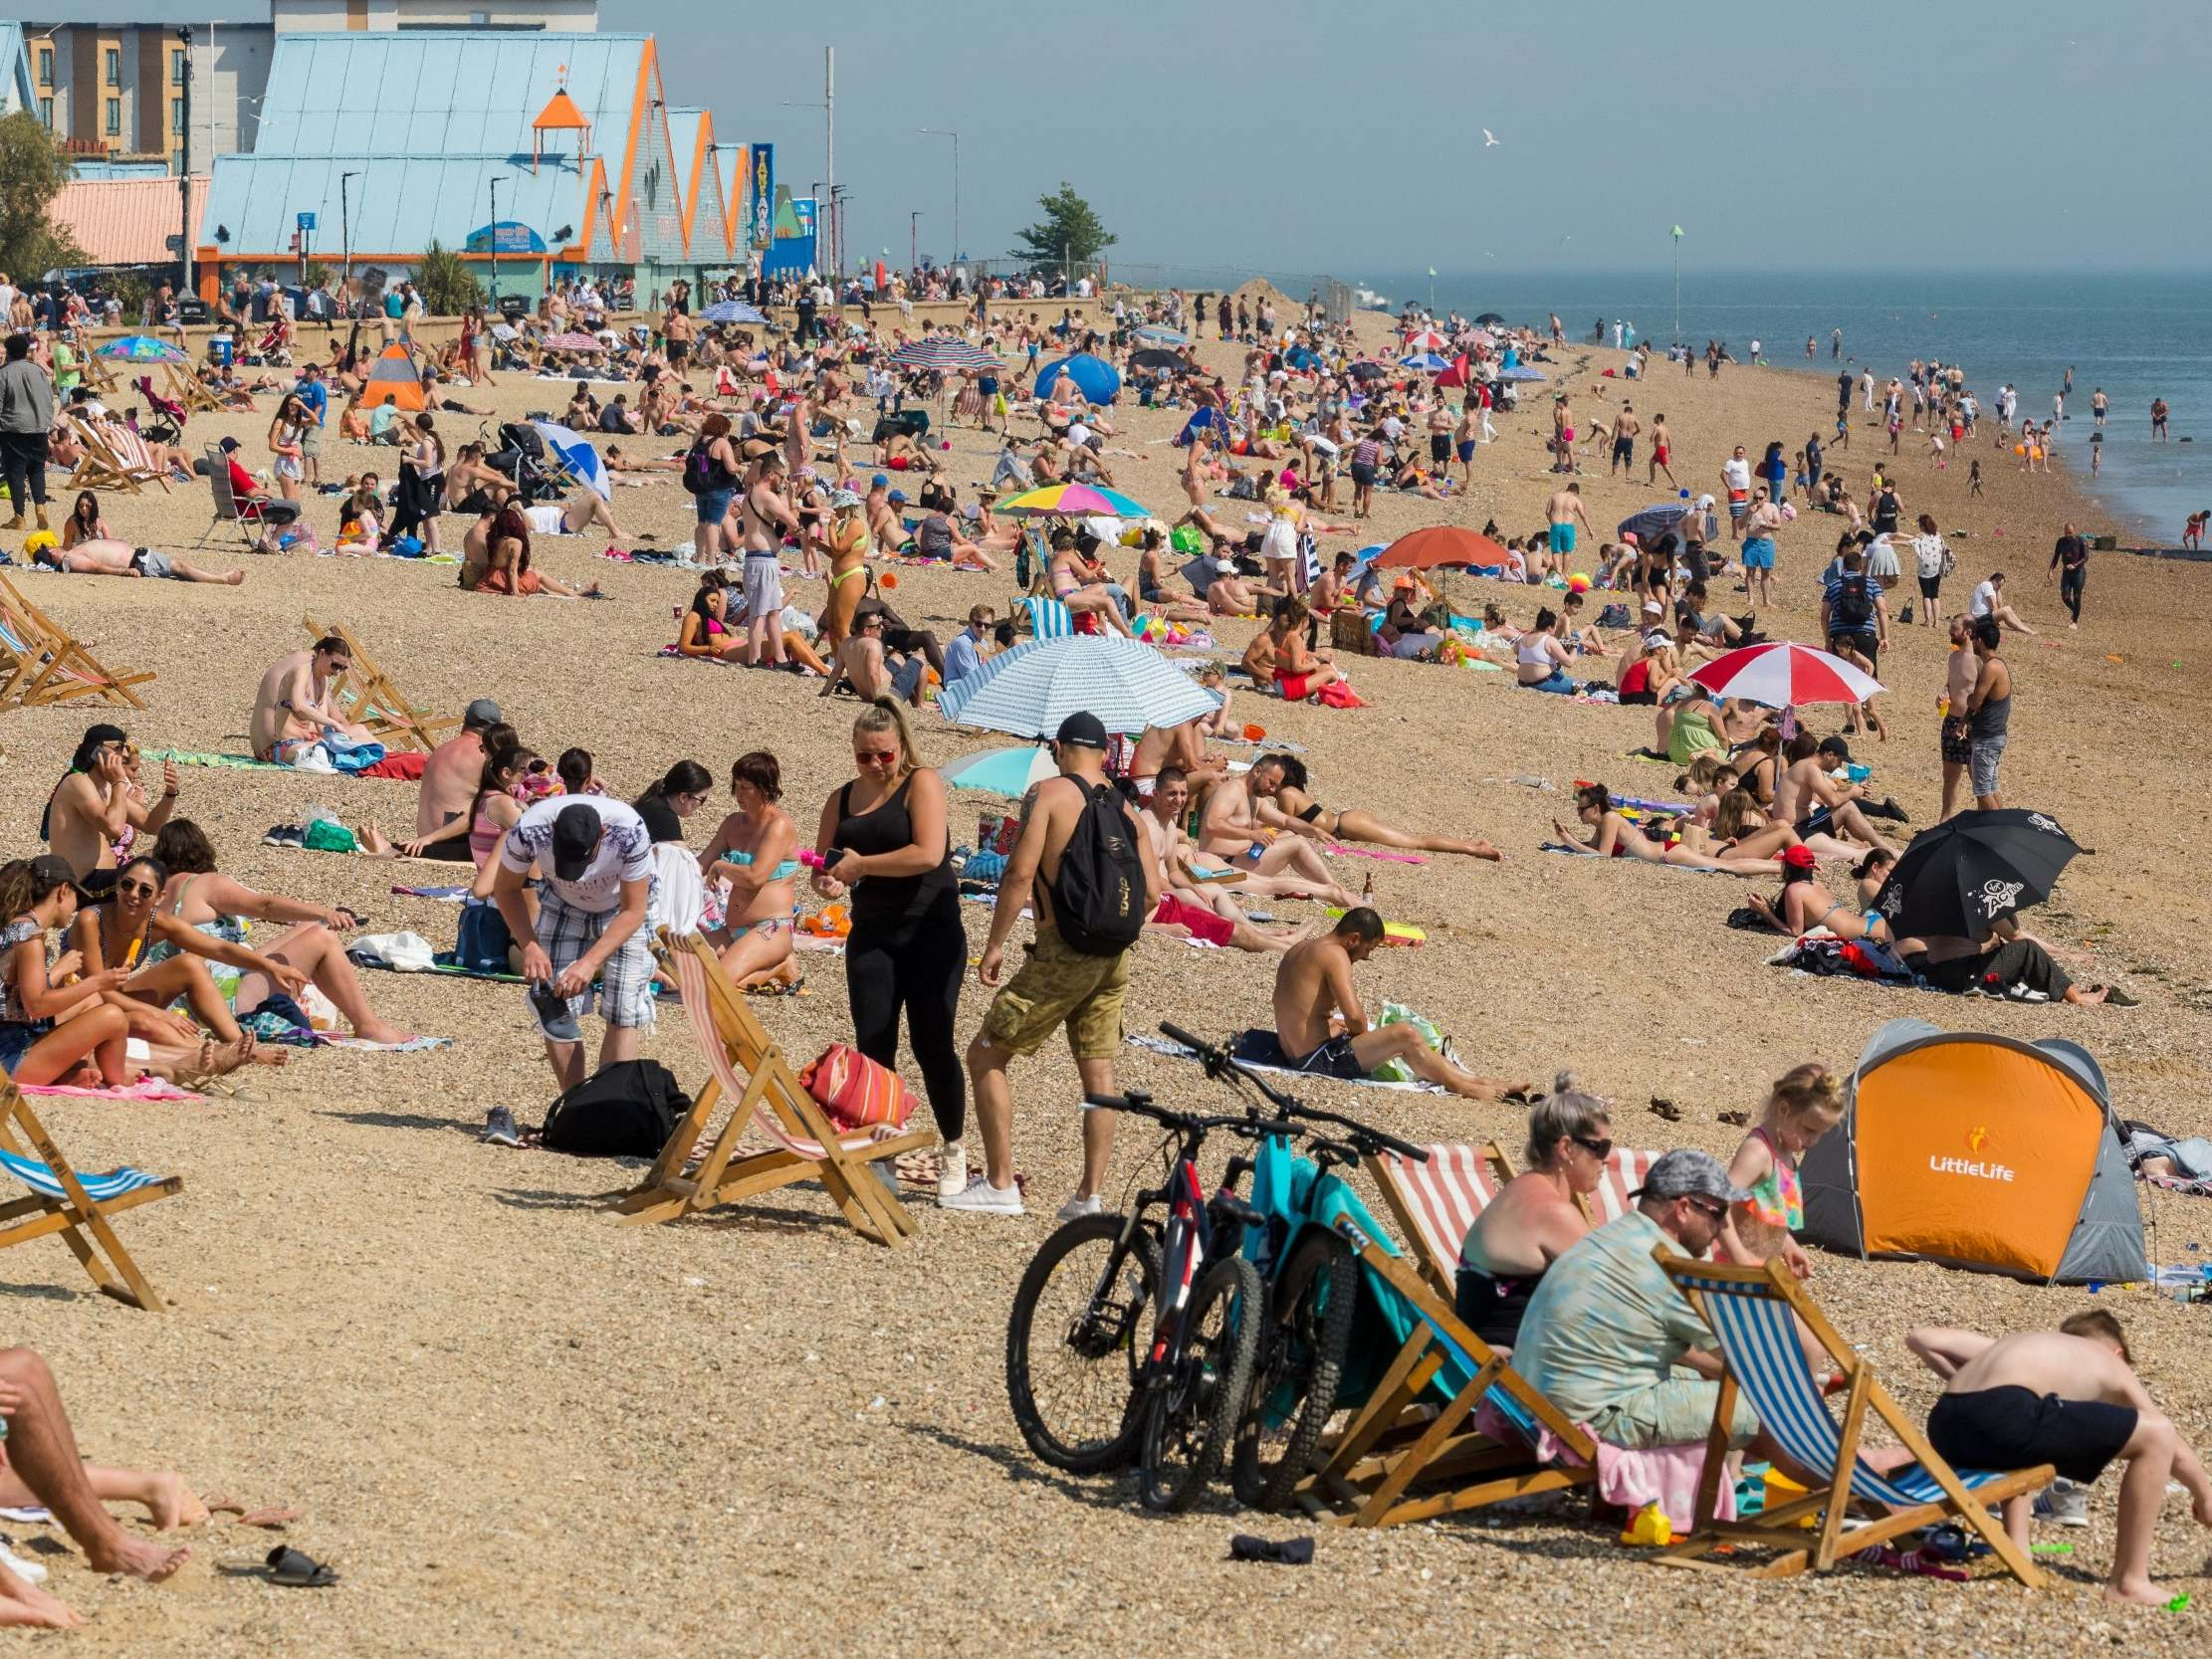 'Police will use enforcement if they have to': Britons warned to avoid beaches over bank holiday weekend